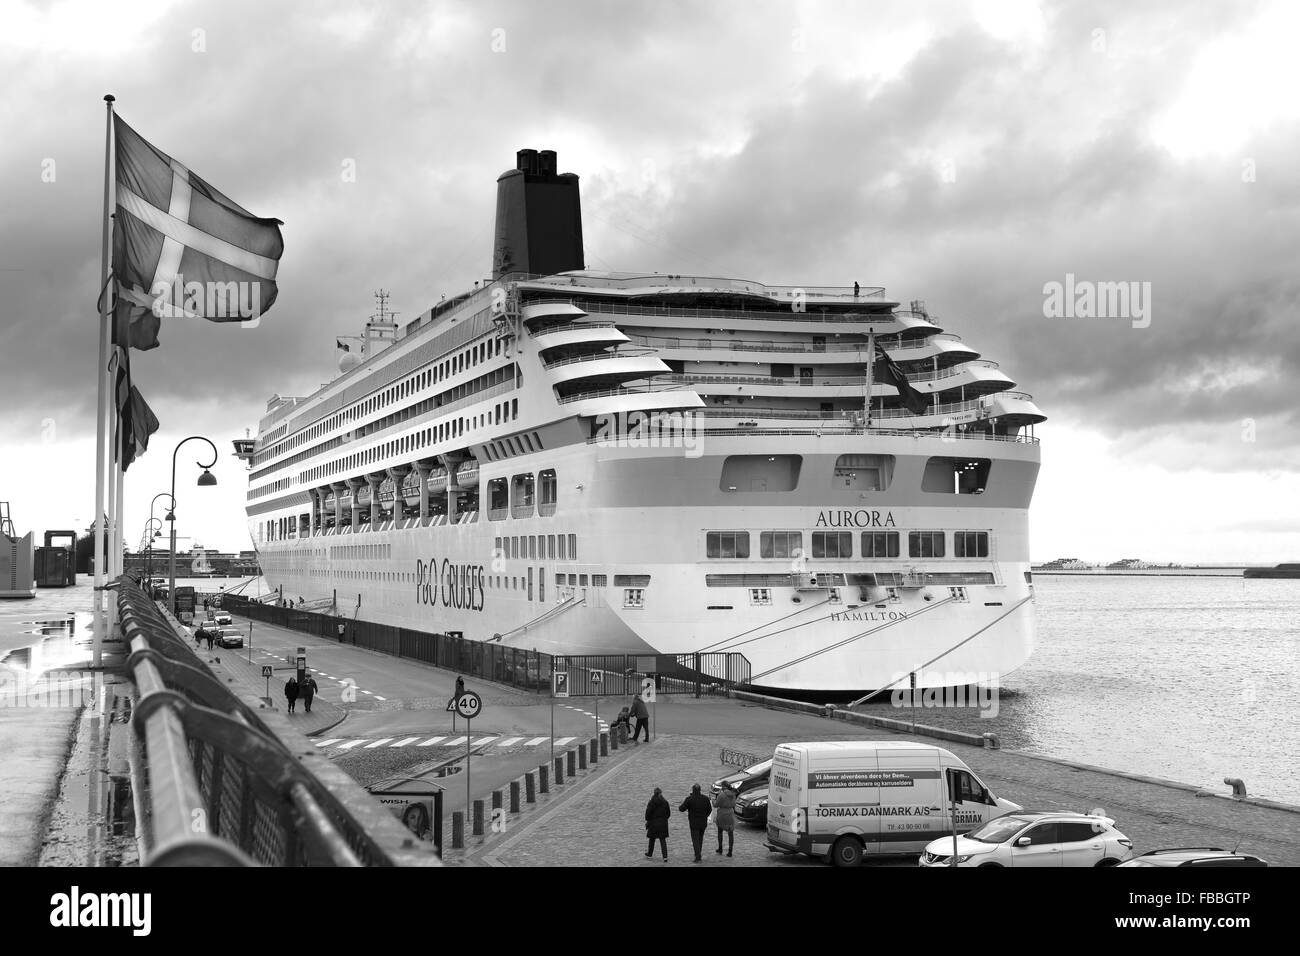 Passenger Ship Black And White Stock Photos Images Alamy Tormax Wiring Diagram Copenhagen Denmark Image